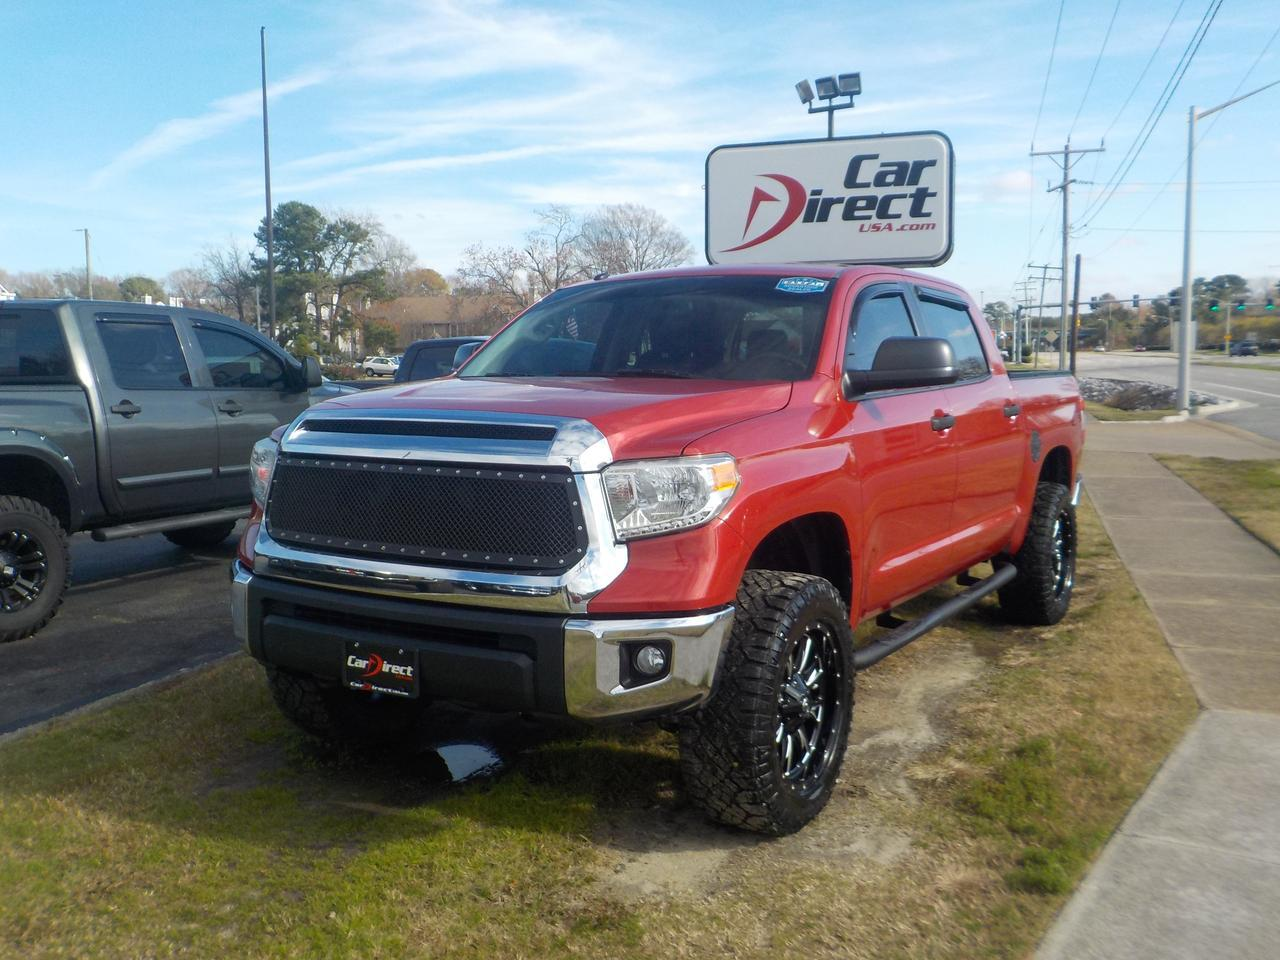 2015 TOYOTA TUNDRA SR5 CREWMAX 4X4, HARD TONNEAU COVER, TOW PACKAGE, BACKUP CAM, NAVIGATION, FUEL RIMS, ONLY 82K MILES! Virginia Beach VA